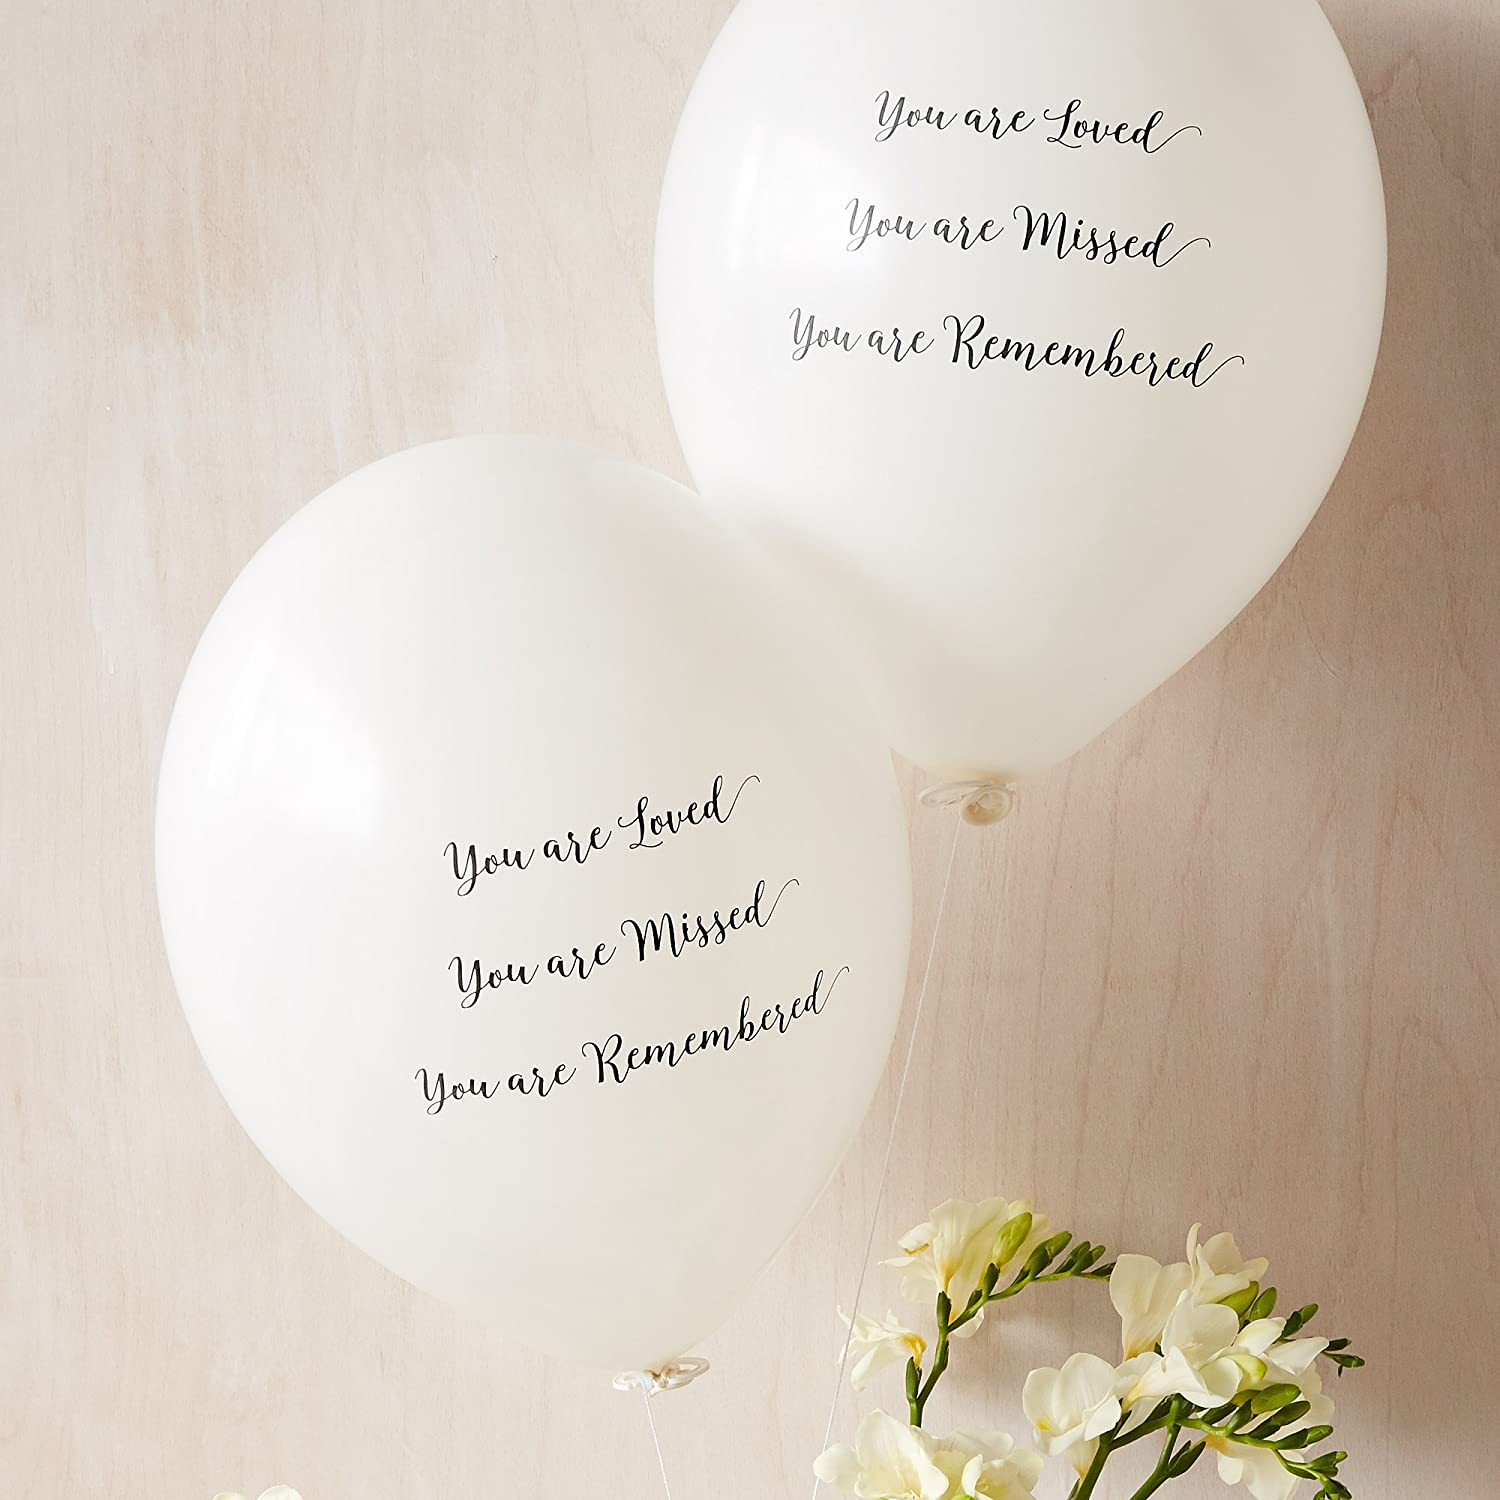 Amazon 25 white you are loved missed remembered amazon 25 white you are loved missed remembered biodegradable funeral remembrance balloons for memory table memorial condolence anniversary by izmirmasajfo